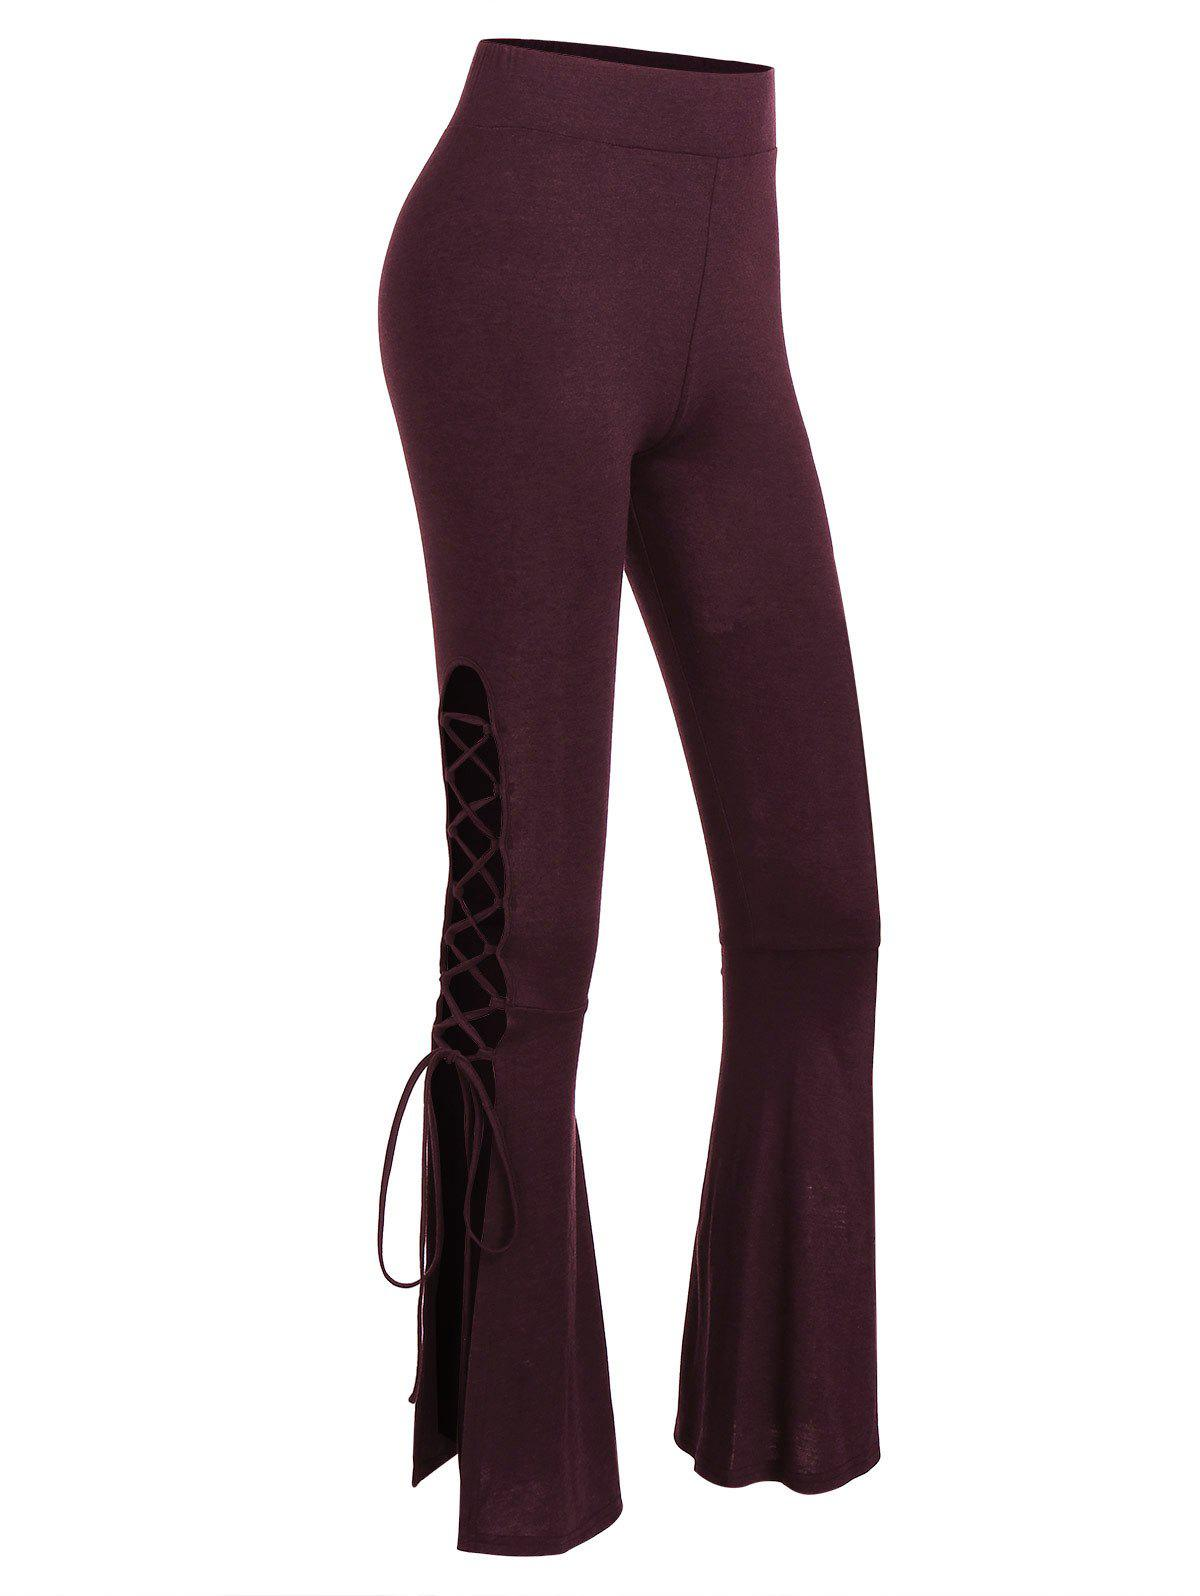 Lace Up Bell Bottom Pants - RED WINE L